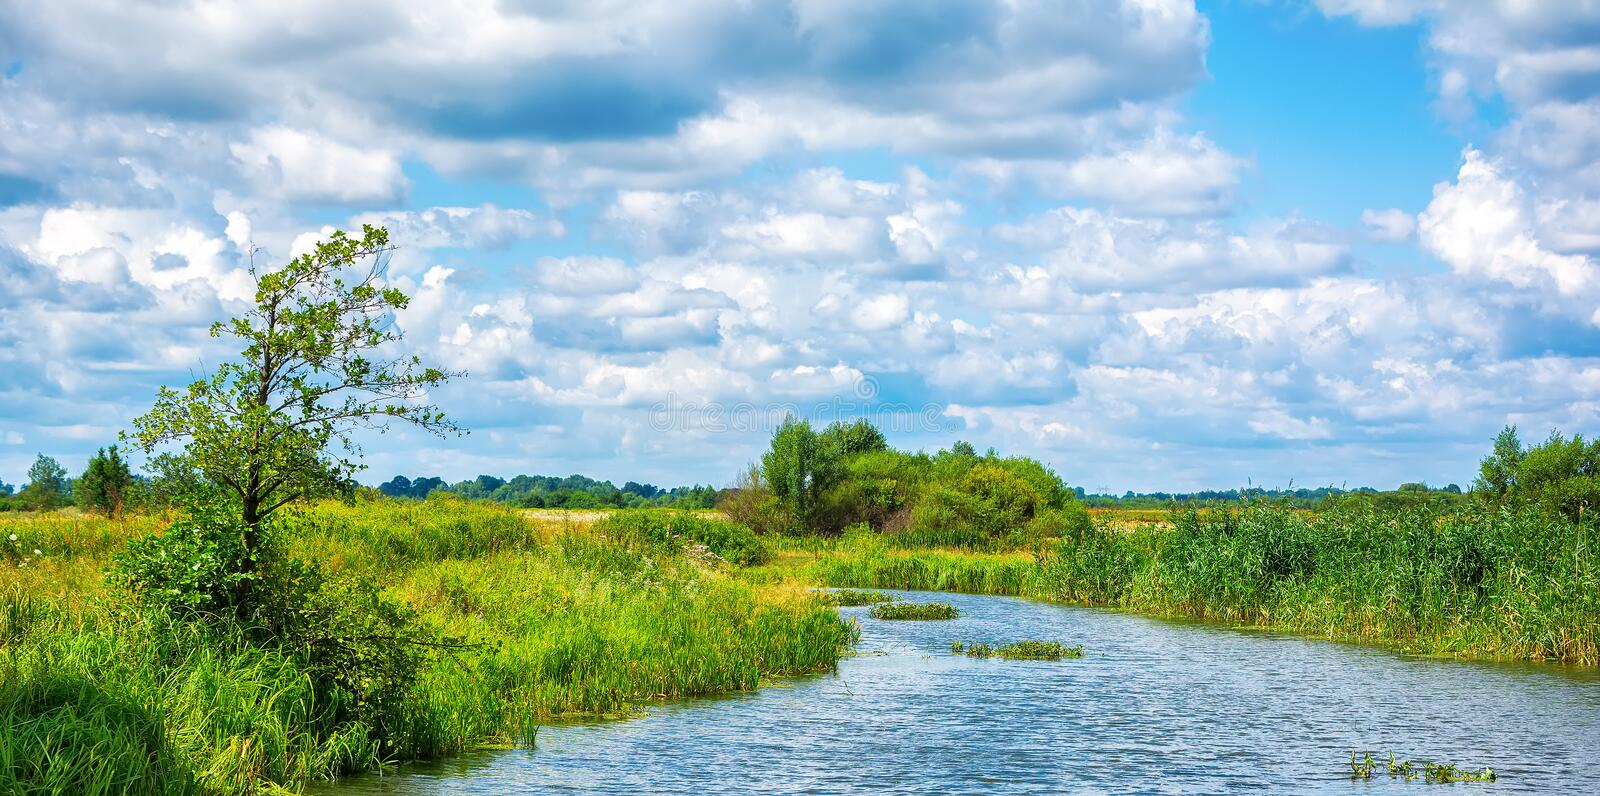 Landscape with river and clouds in the sky. royalty free stock photography